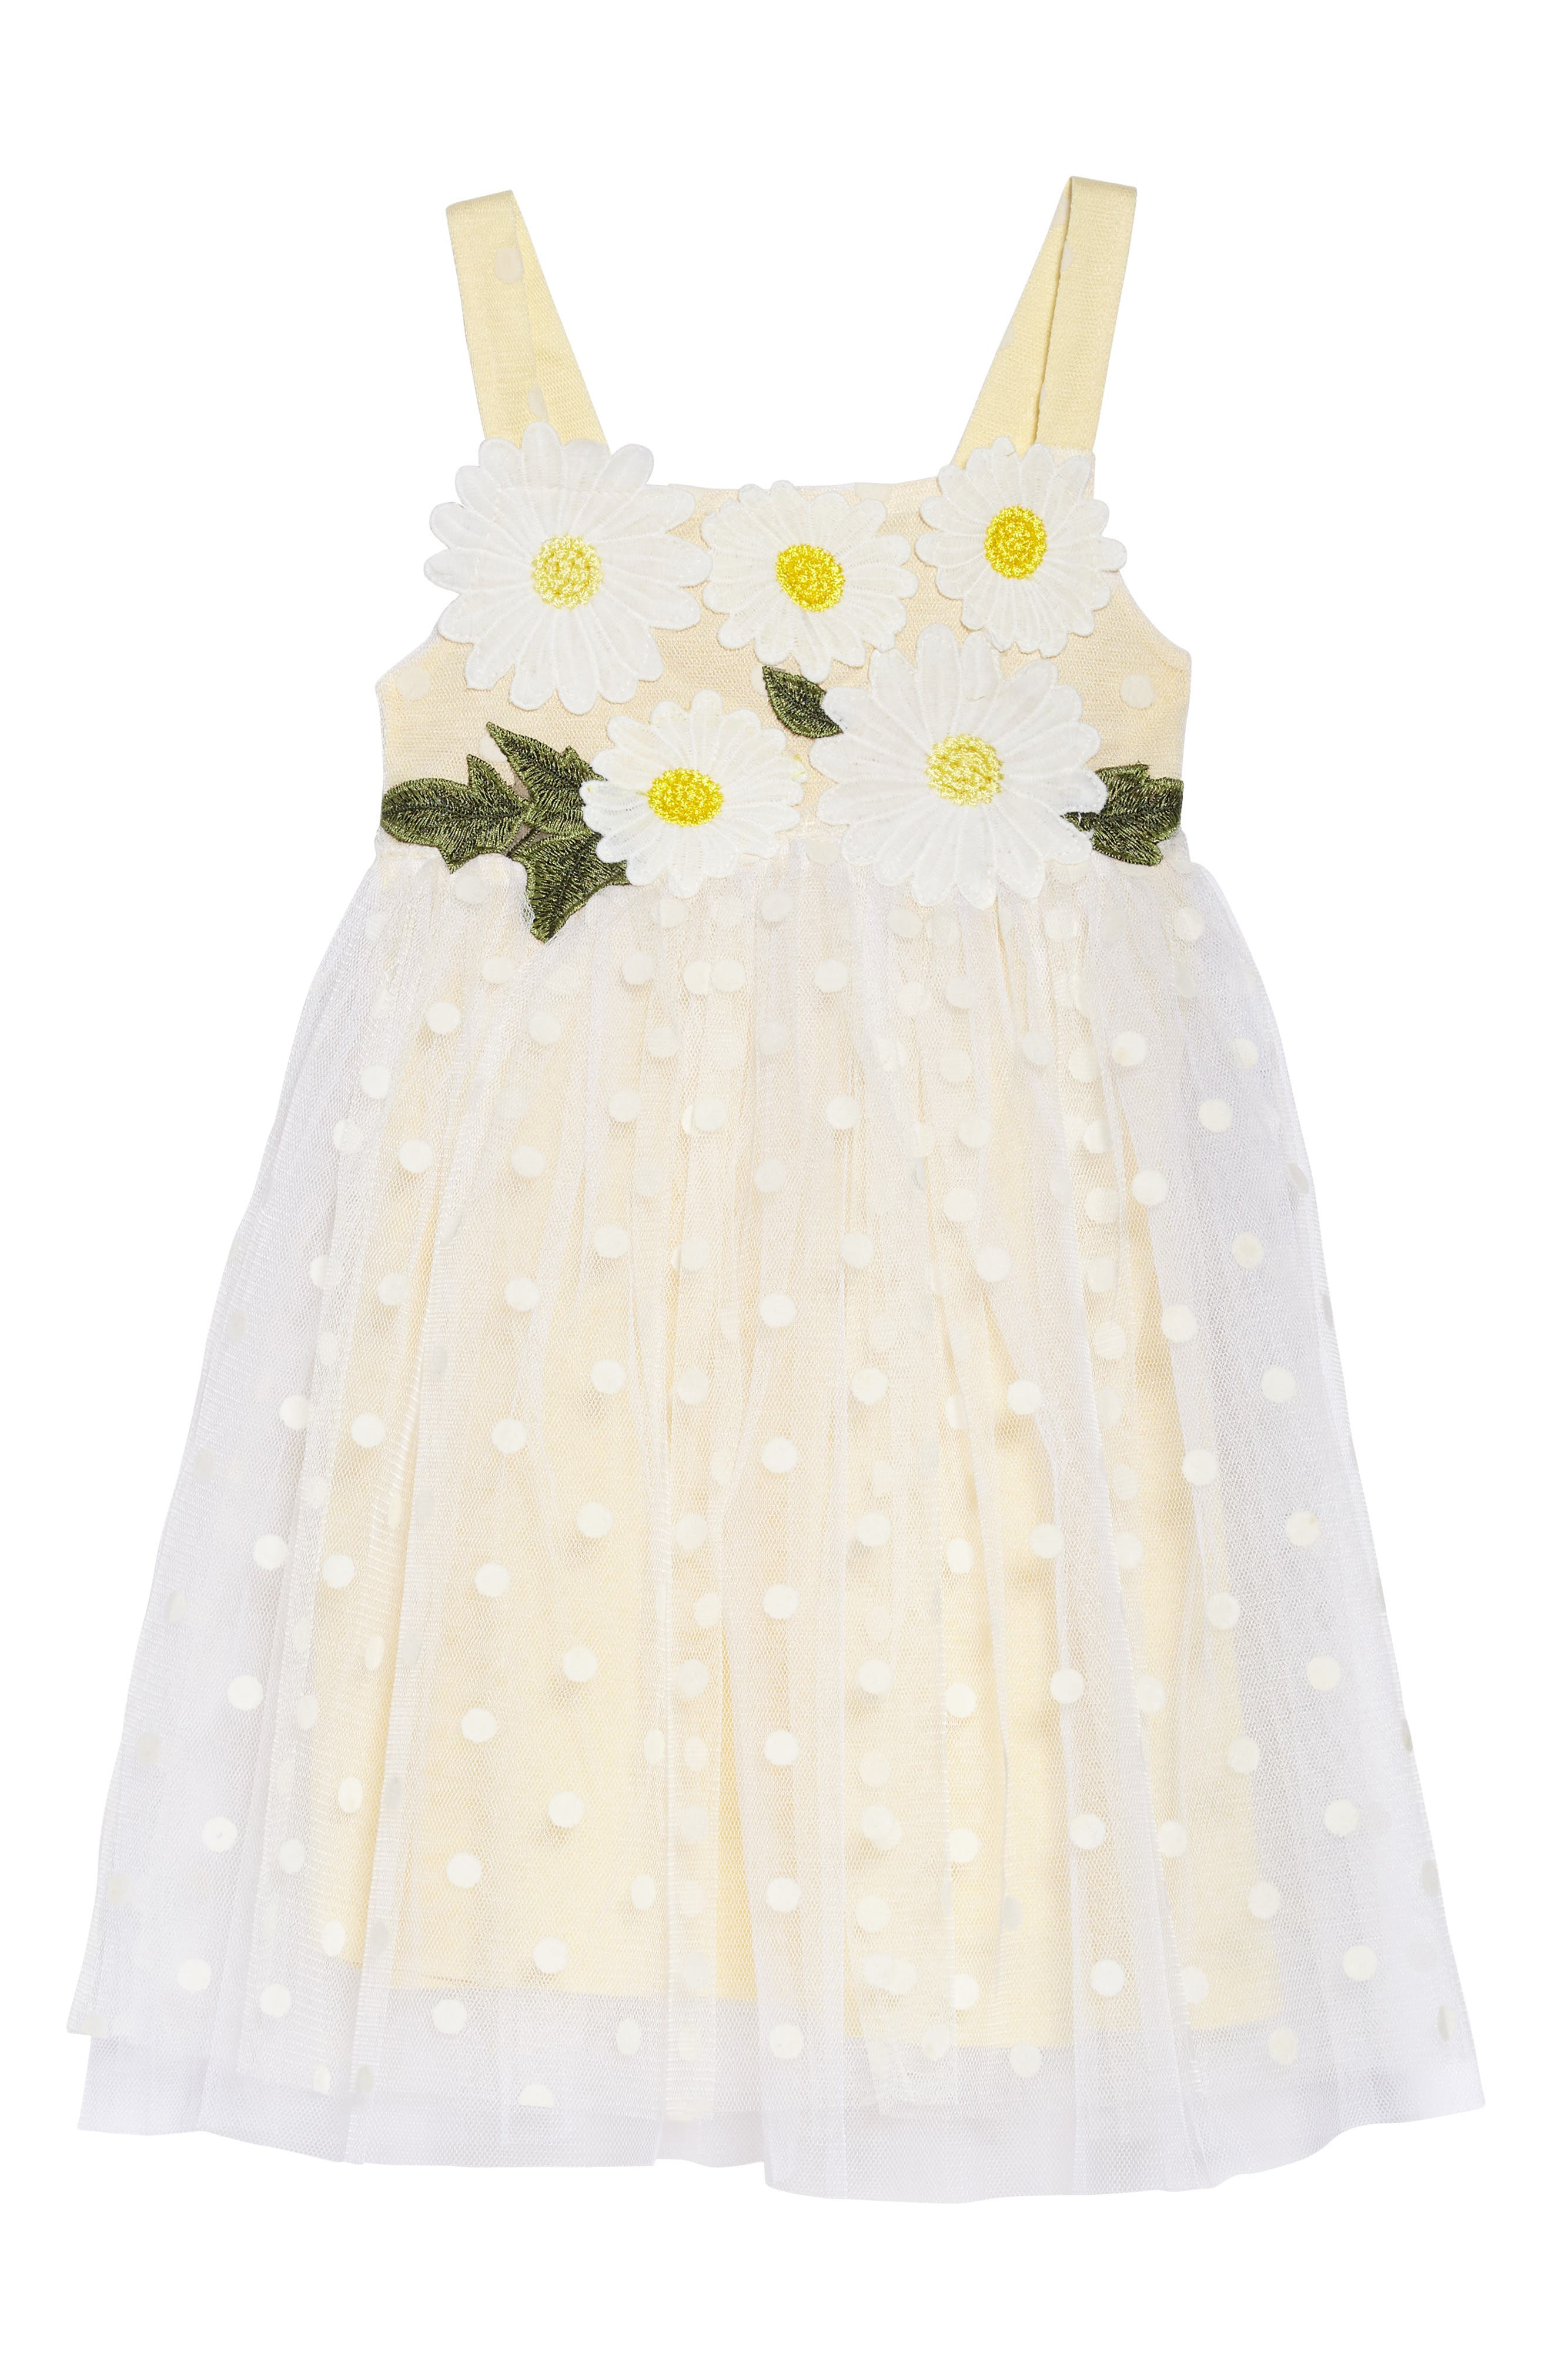 Polka Dot Dress,                             Main thumbnail 1, color,                             White Multi